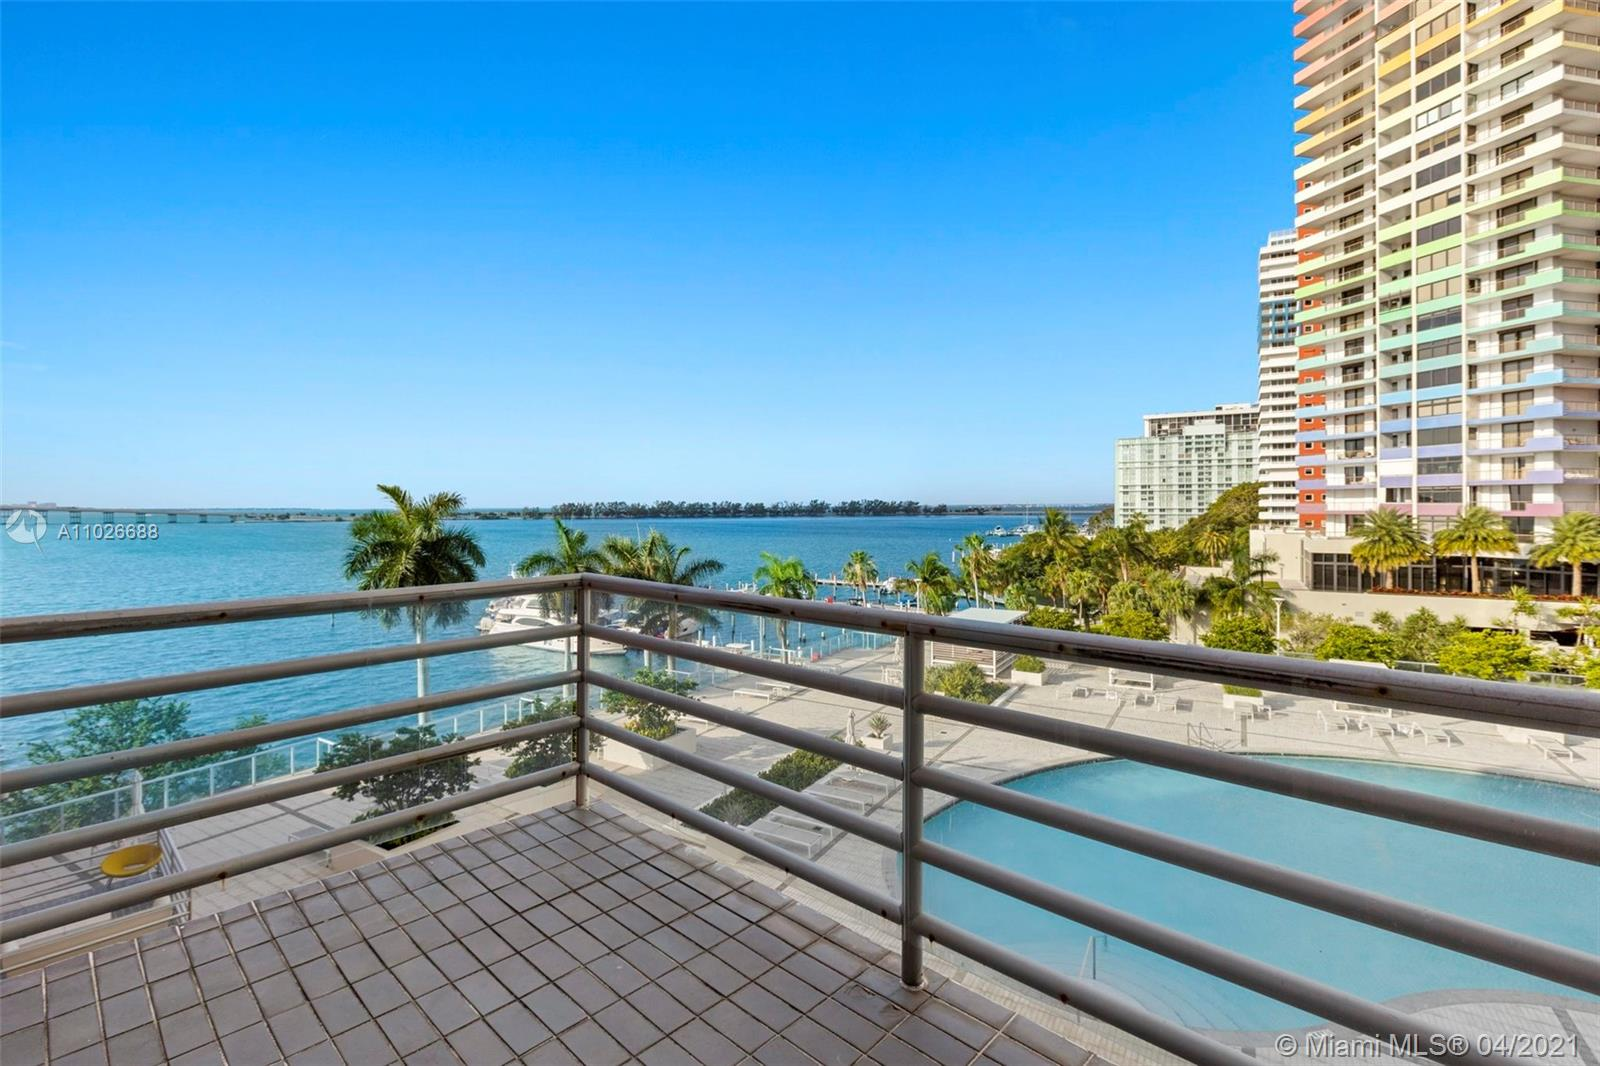 Beautiful 3 bedrooms 2 Bathrooms at The Palace Brickell with Balcony overlooking the Bay and the recently renovated gorgious Pool. Large living and dining area. Lots of closets. Enjoy Bay Views from every room! Ideally located within walking distance to everything in Brickell, the Palace on Brickell offers state of the art amenities (gym, 2 lighted tennis courts, gorgeous pool, sundeck, kids play room, ect..). Recent enhancements and upgrades of the building provide a pleasant environment and quiet relaxation with an enlarged spa area, outdoor lounge and two new pavilions. Very easy to show.